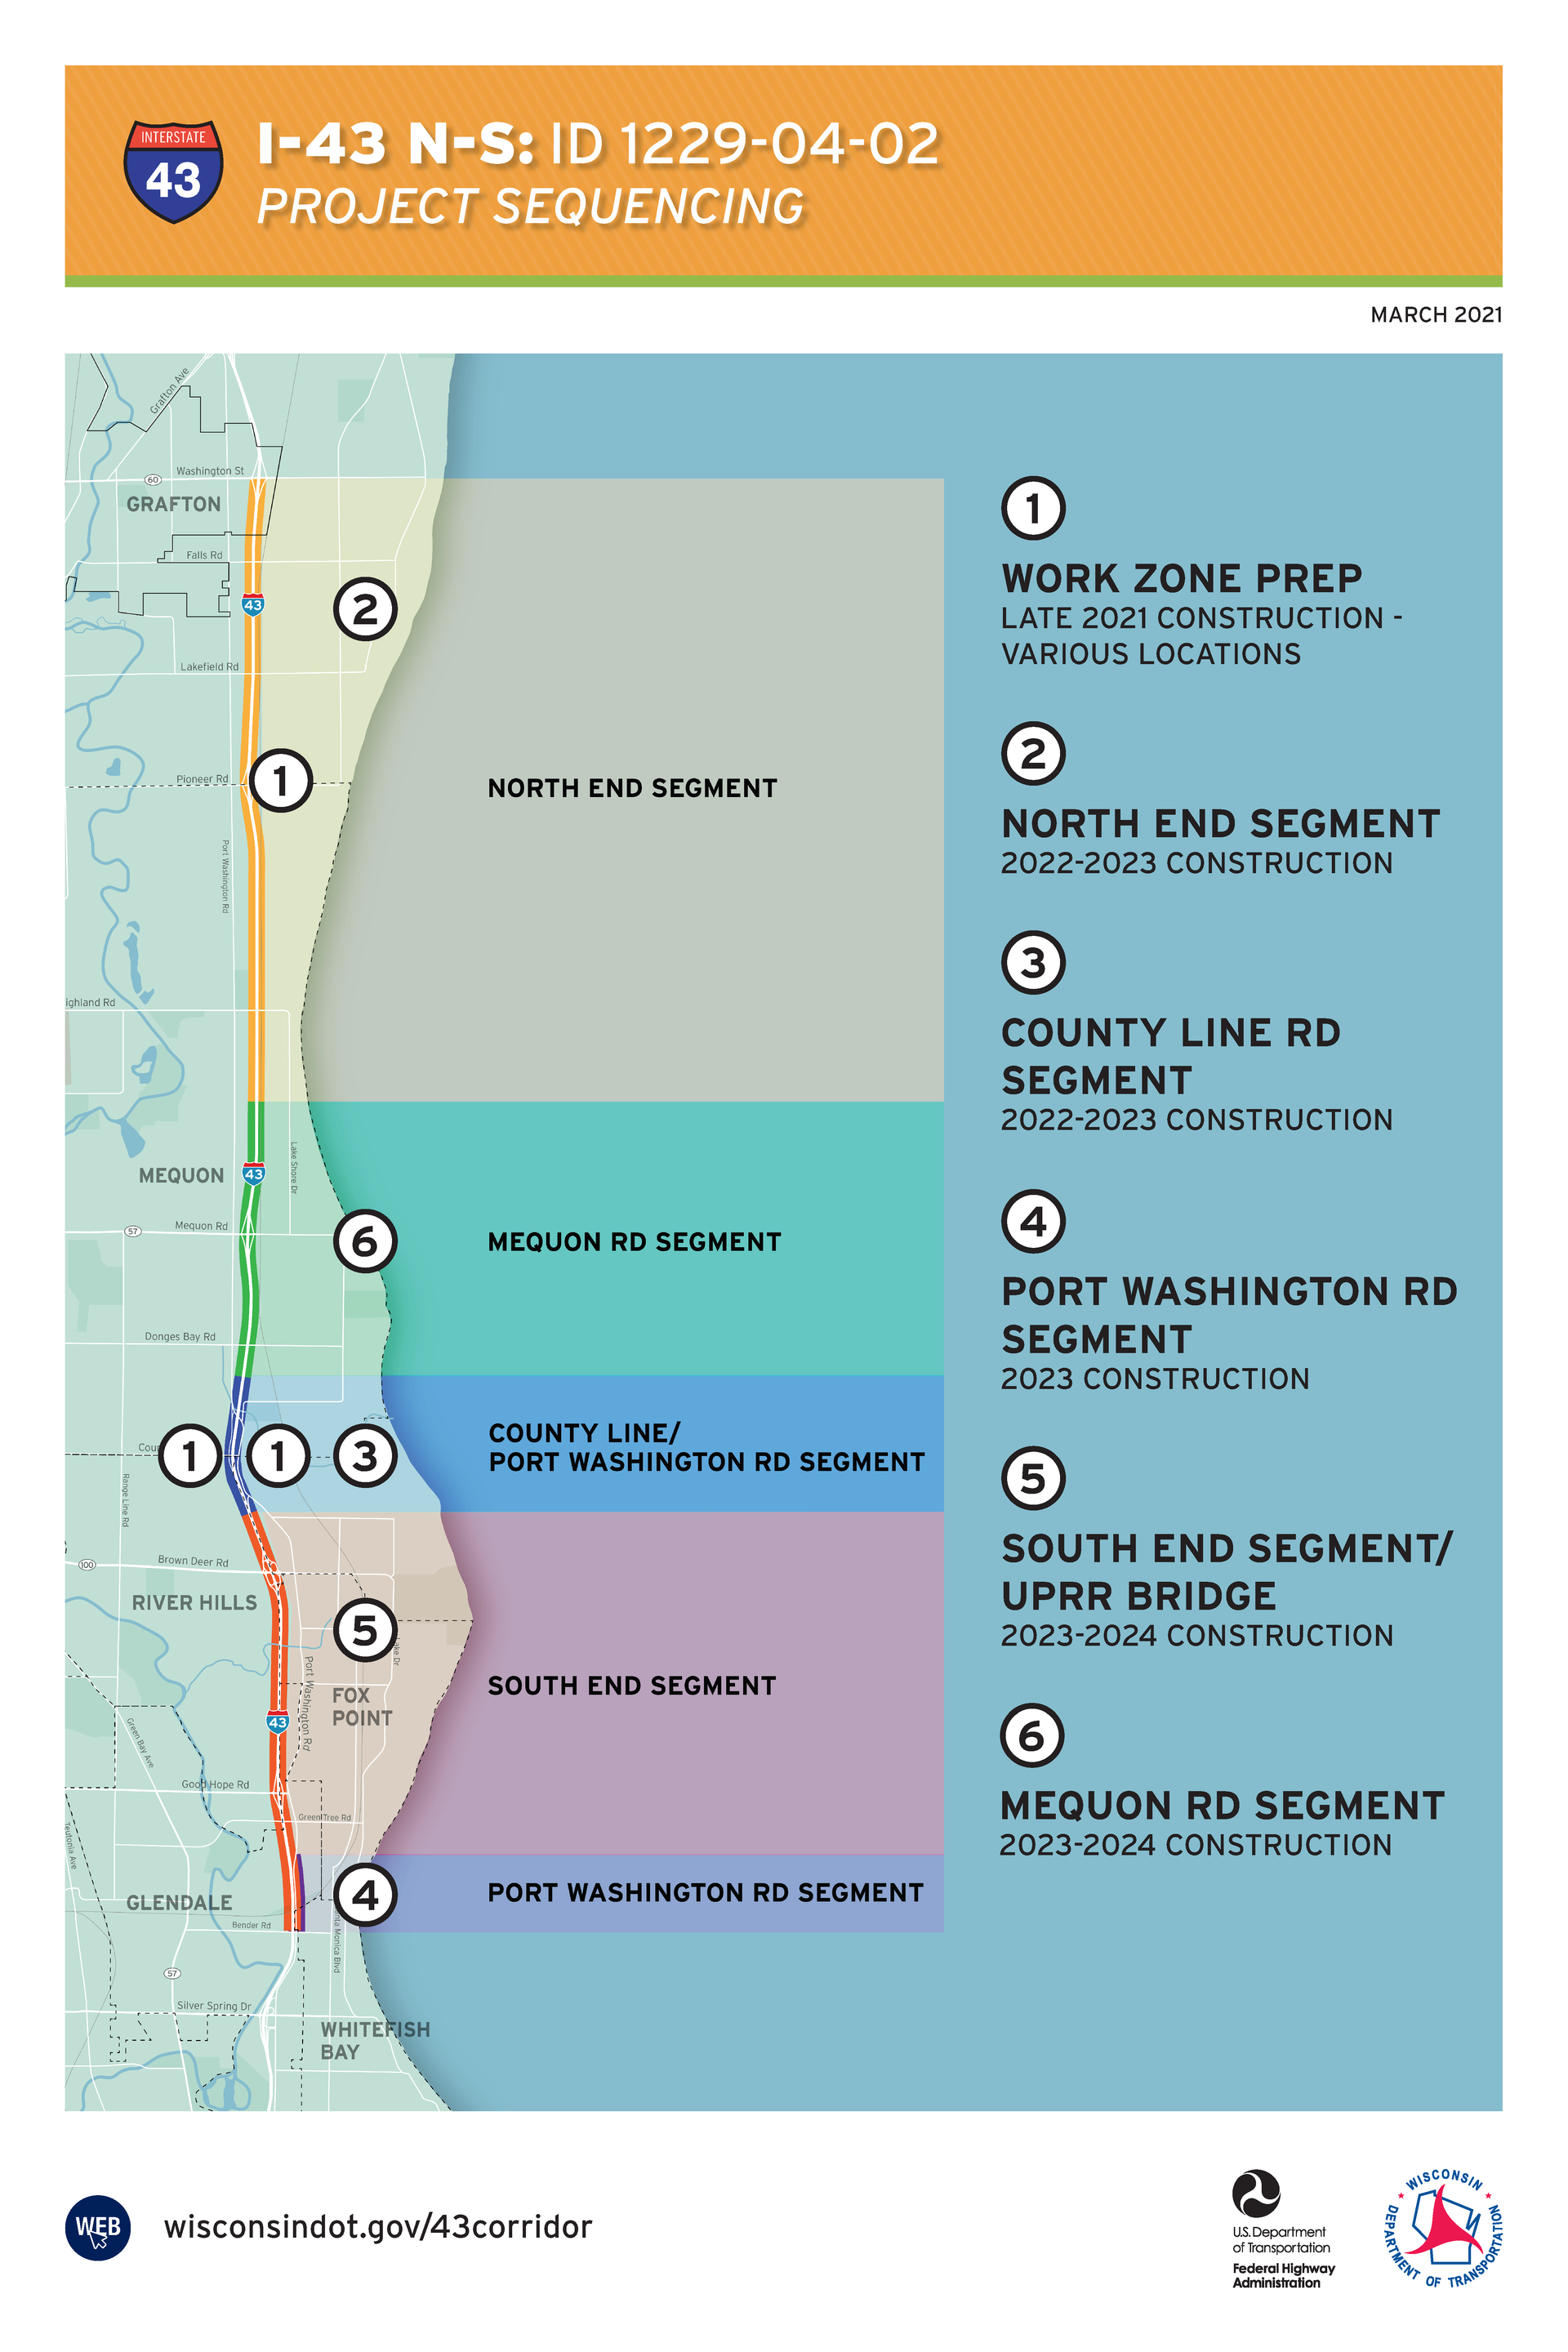 I-43 North-South Freeway project map